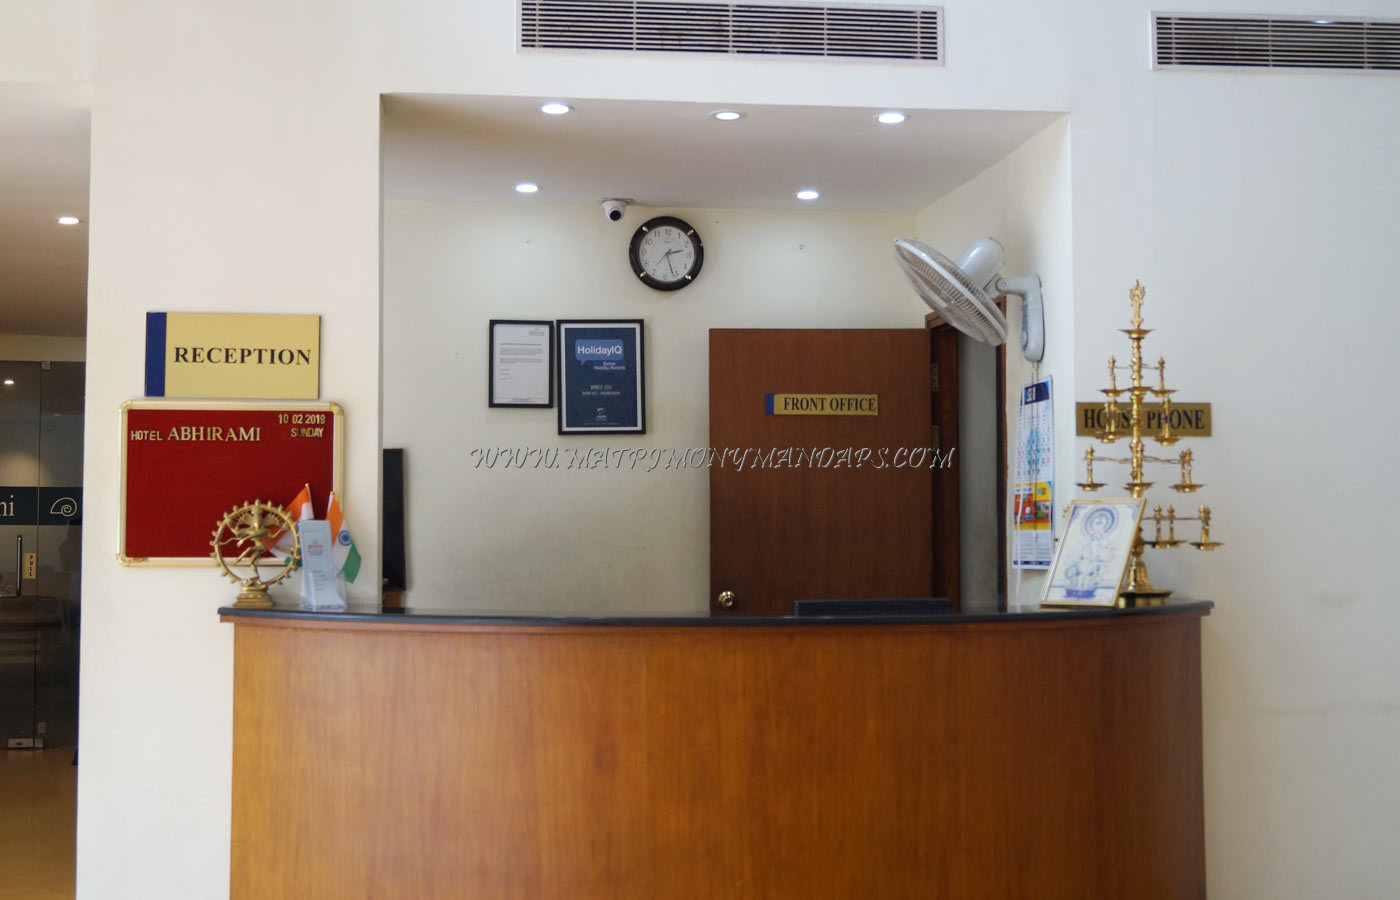 Find the availability of the Hotel Abhirami Senate (A/C) in Kattakkada, Trivandrum and avail special offers